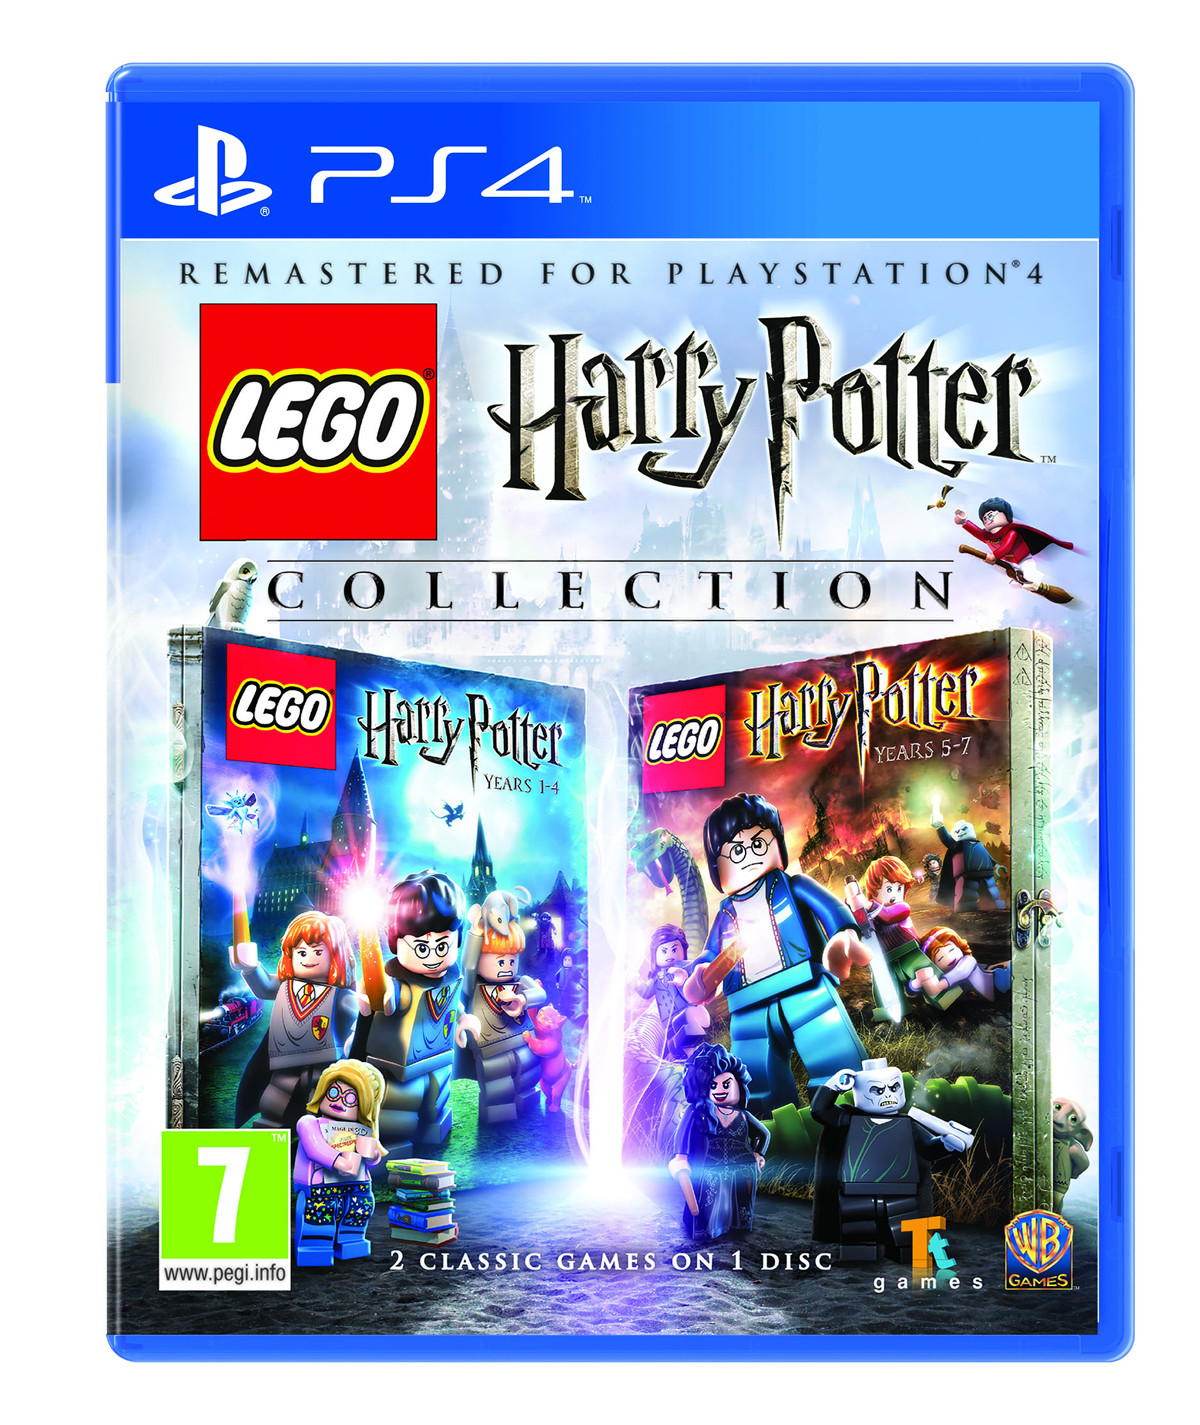 LEGO Harry Potter Collection Coming to PS4